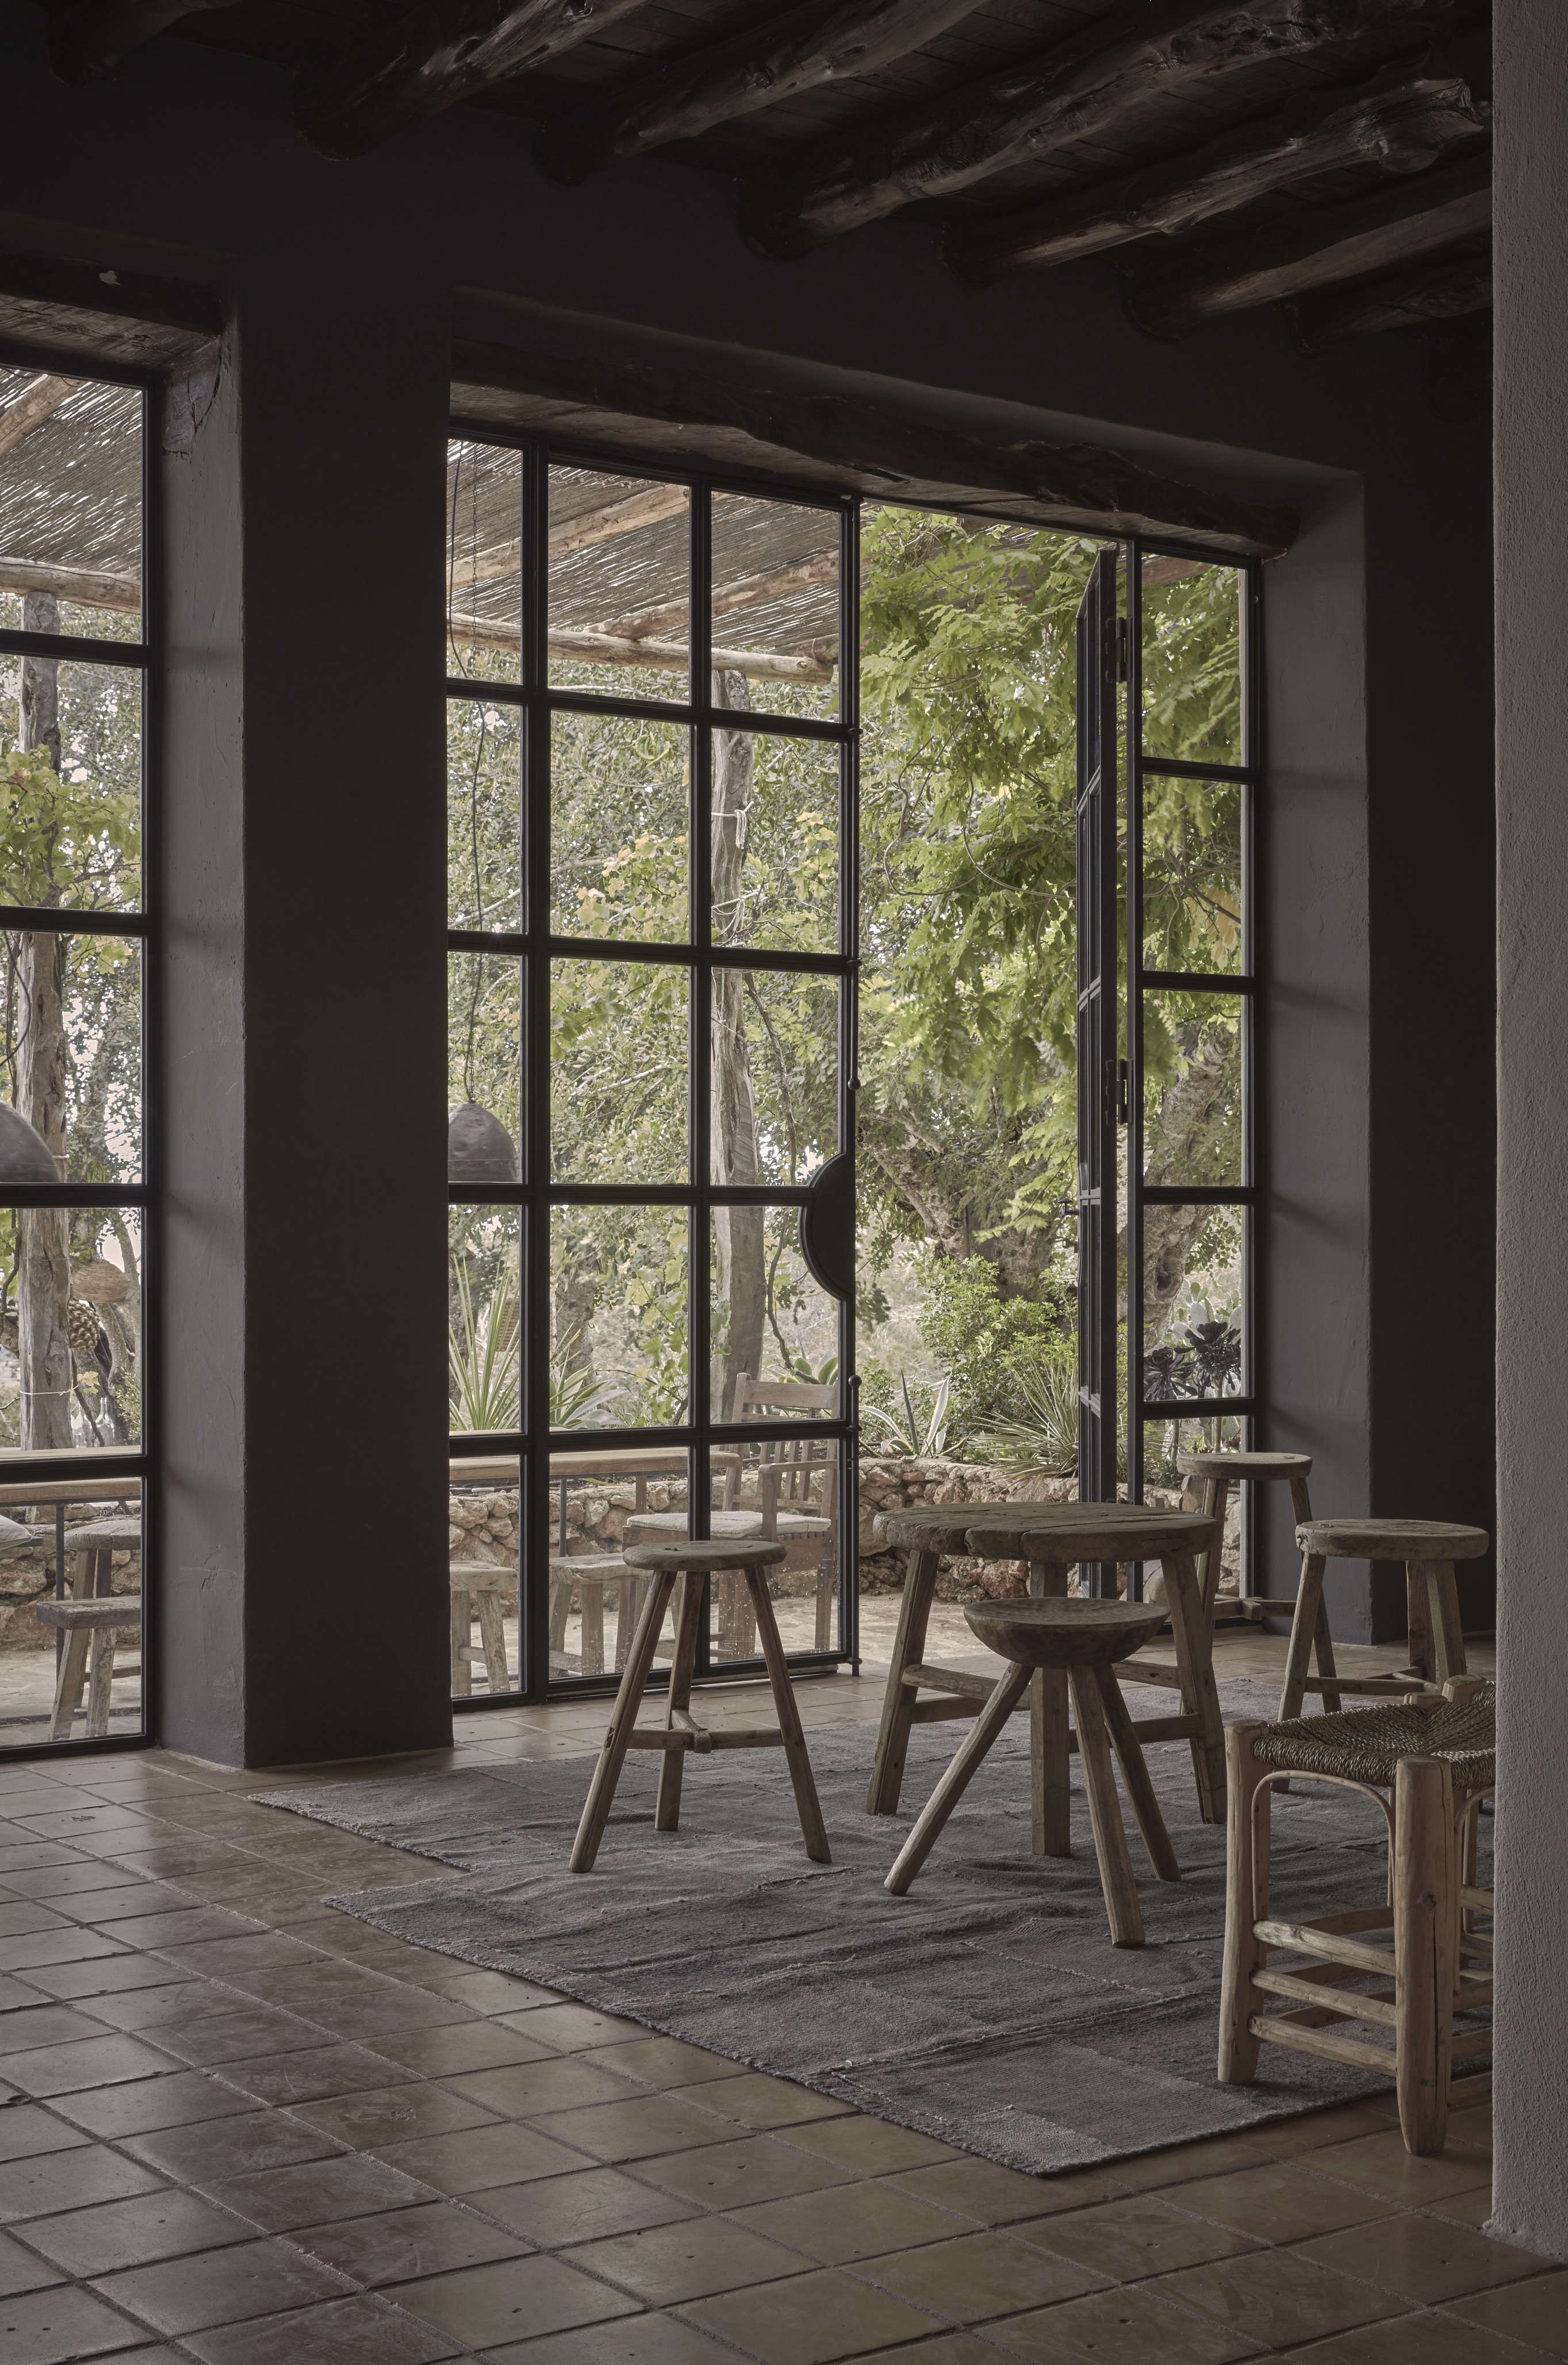 Hardscaping 101 Steel FactoryStyle Windows and Doors